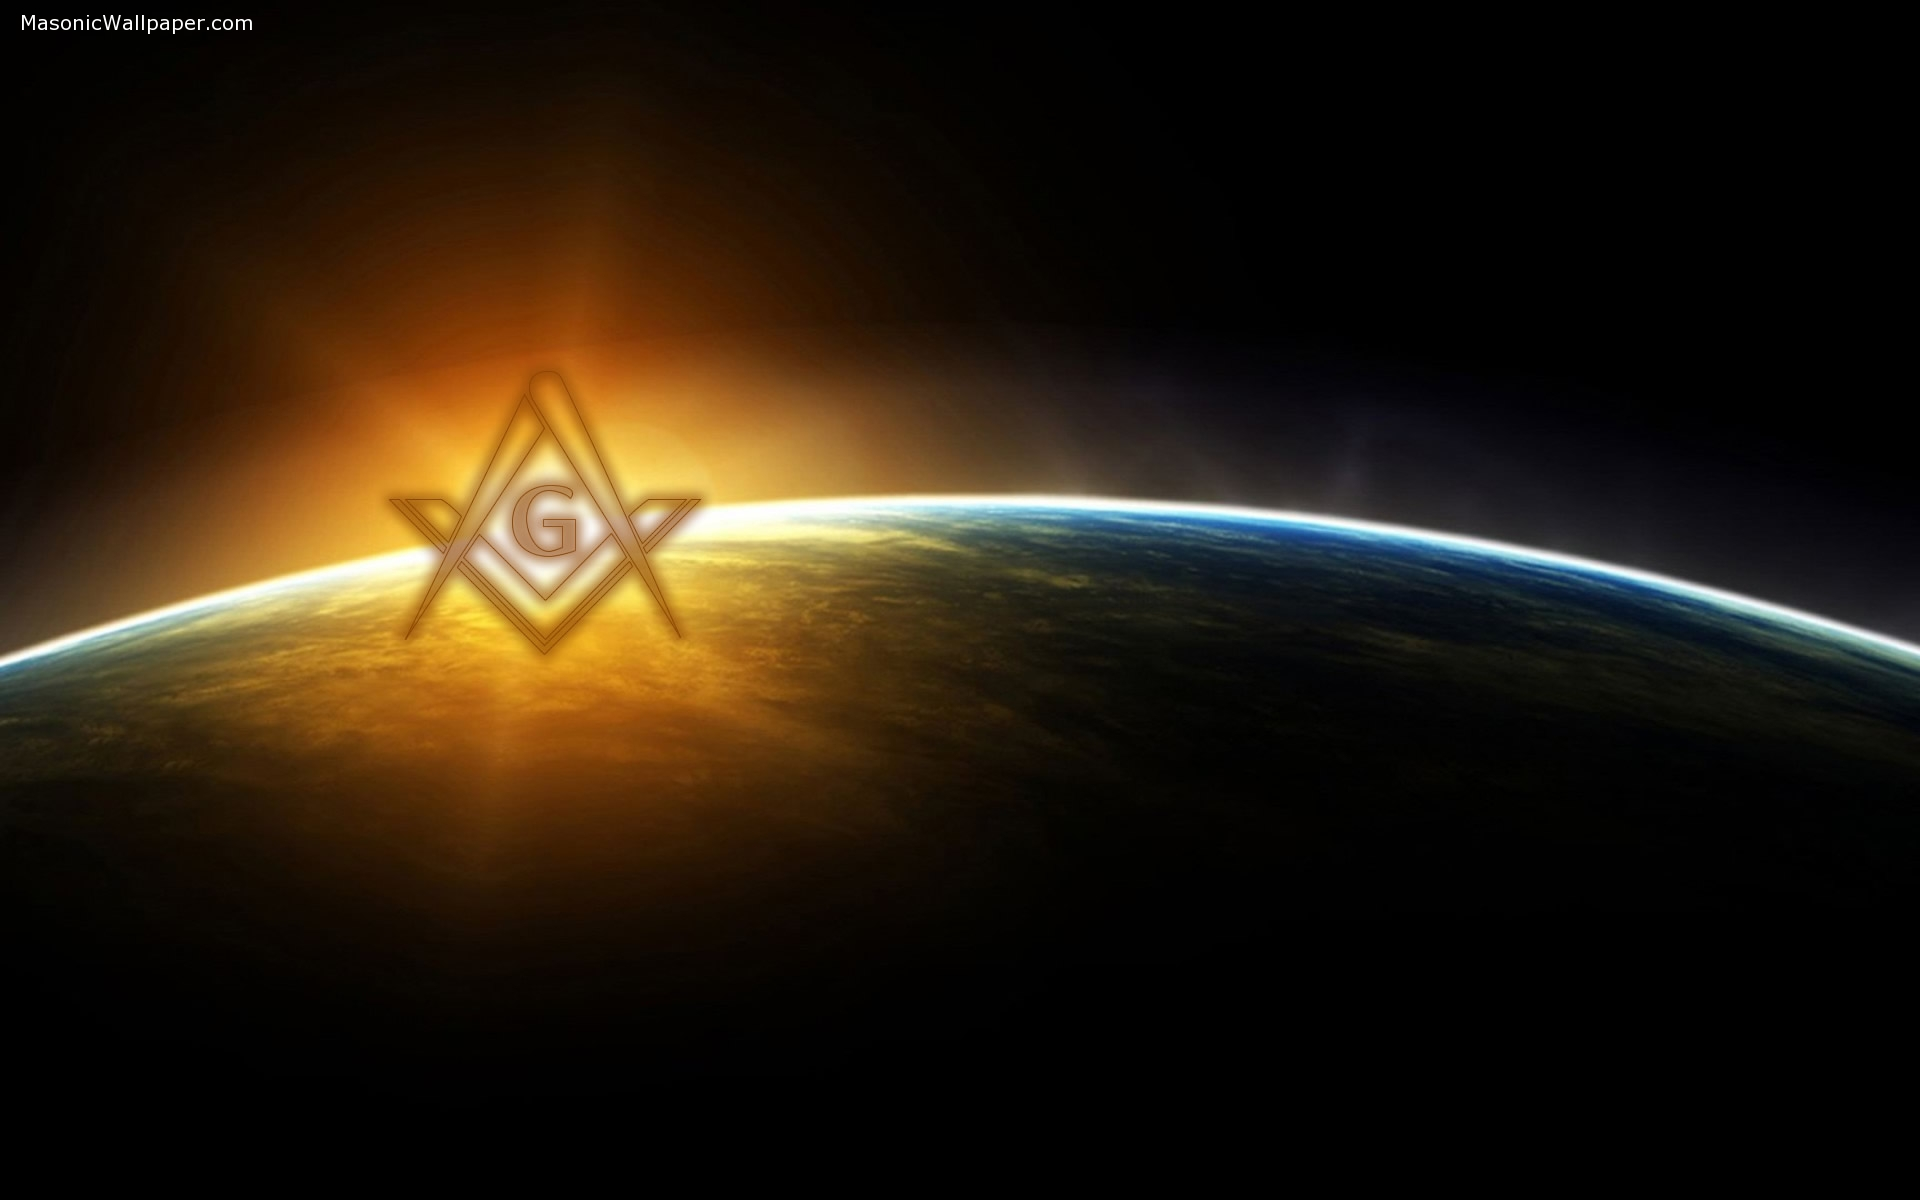 Masonic Wallpaper for your Desktop or Phone 1920x1200